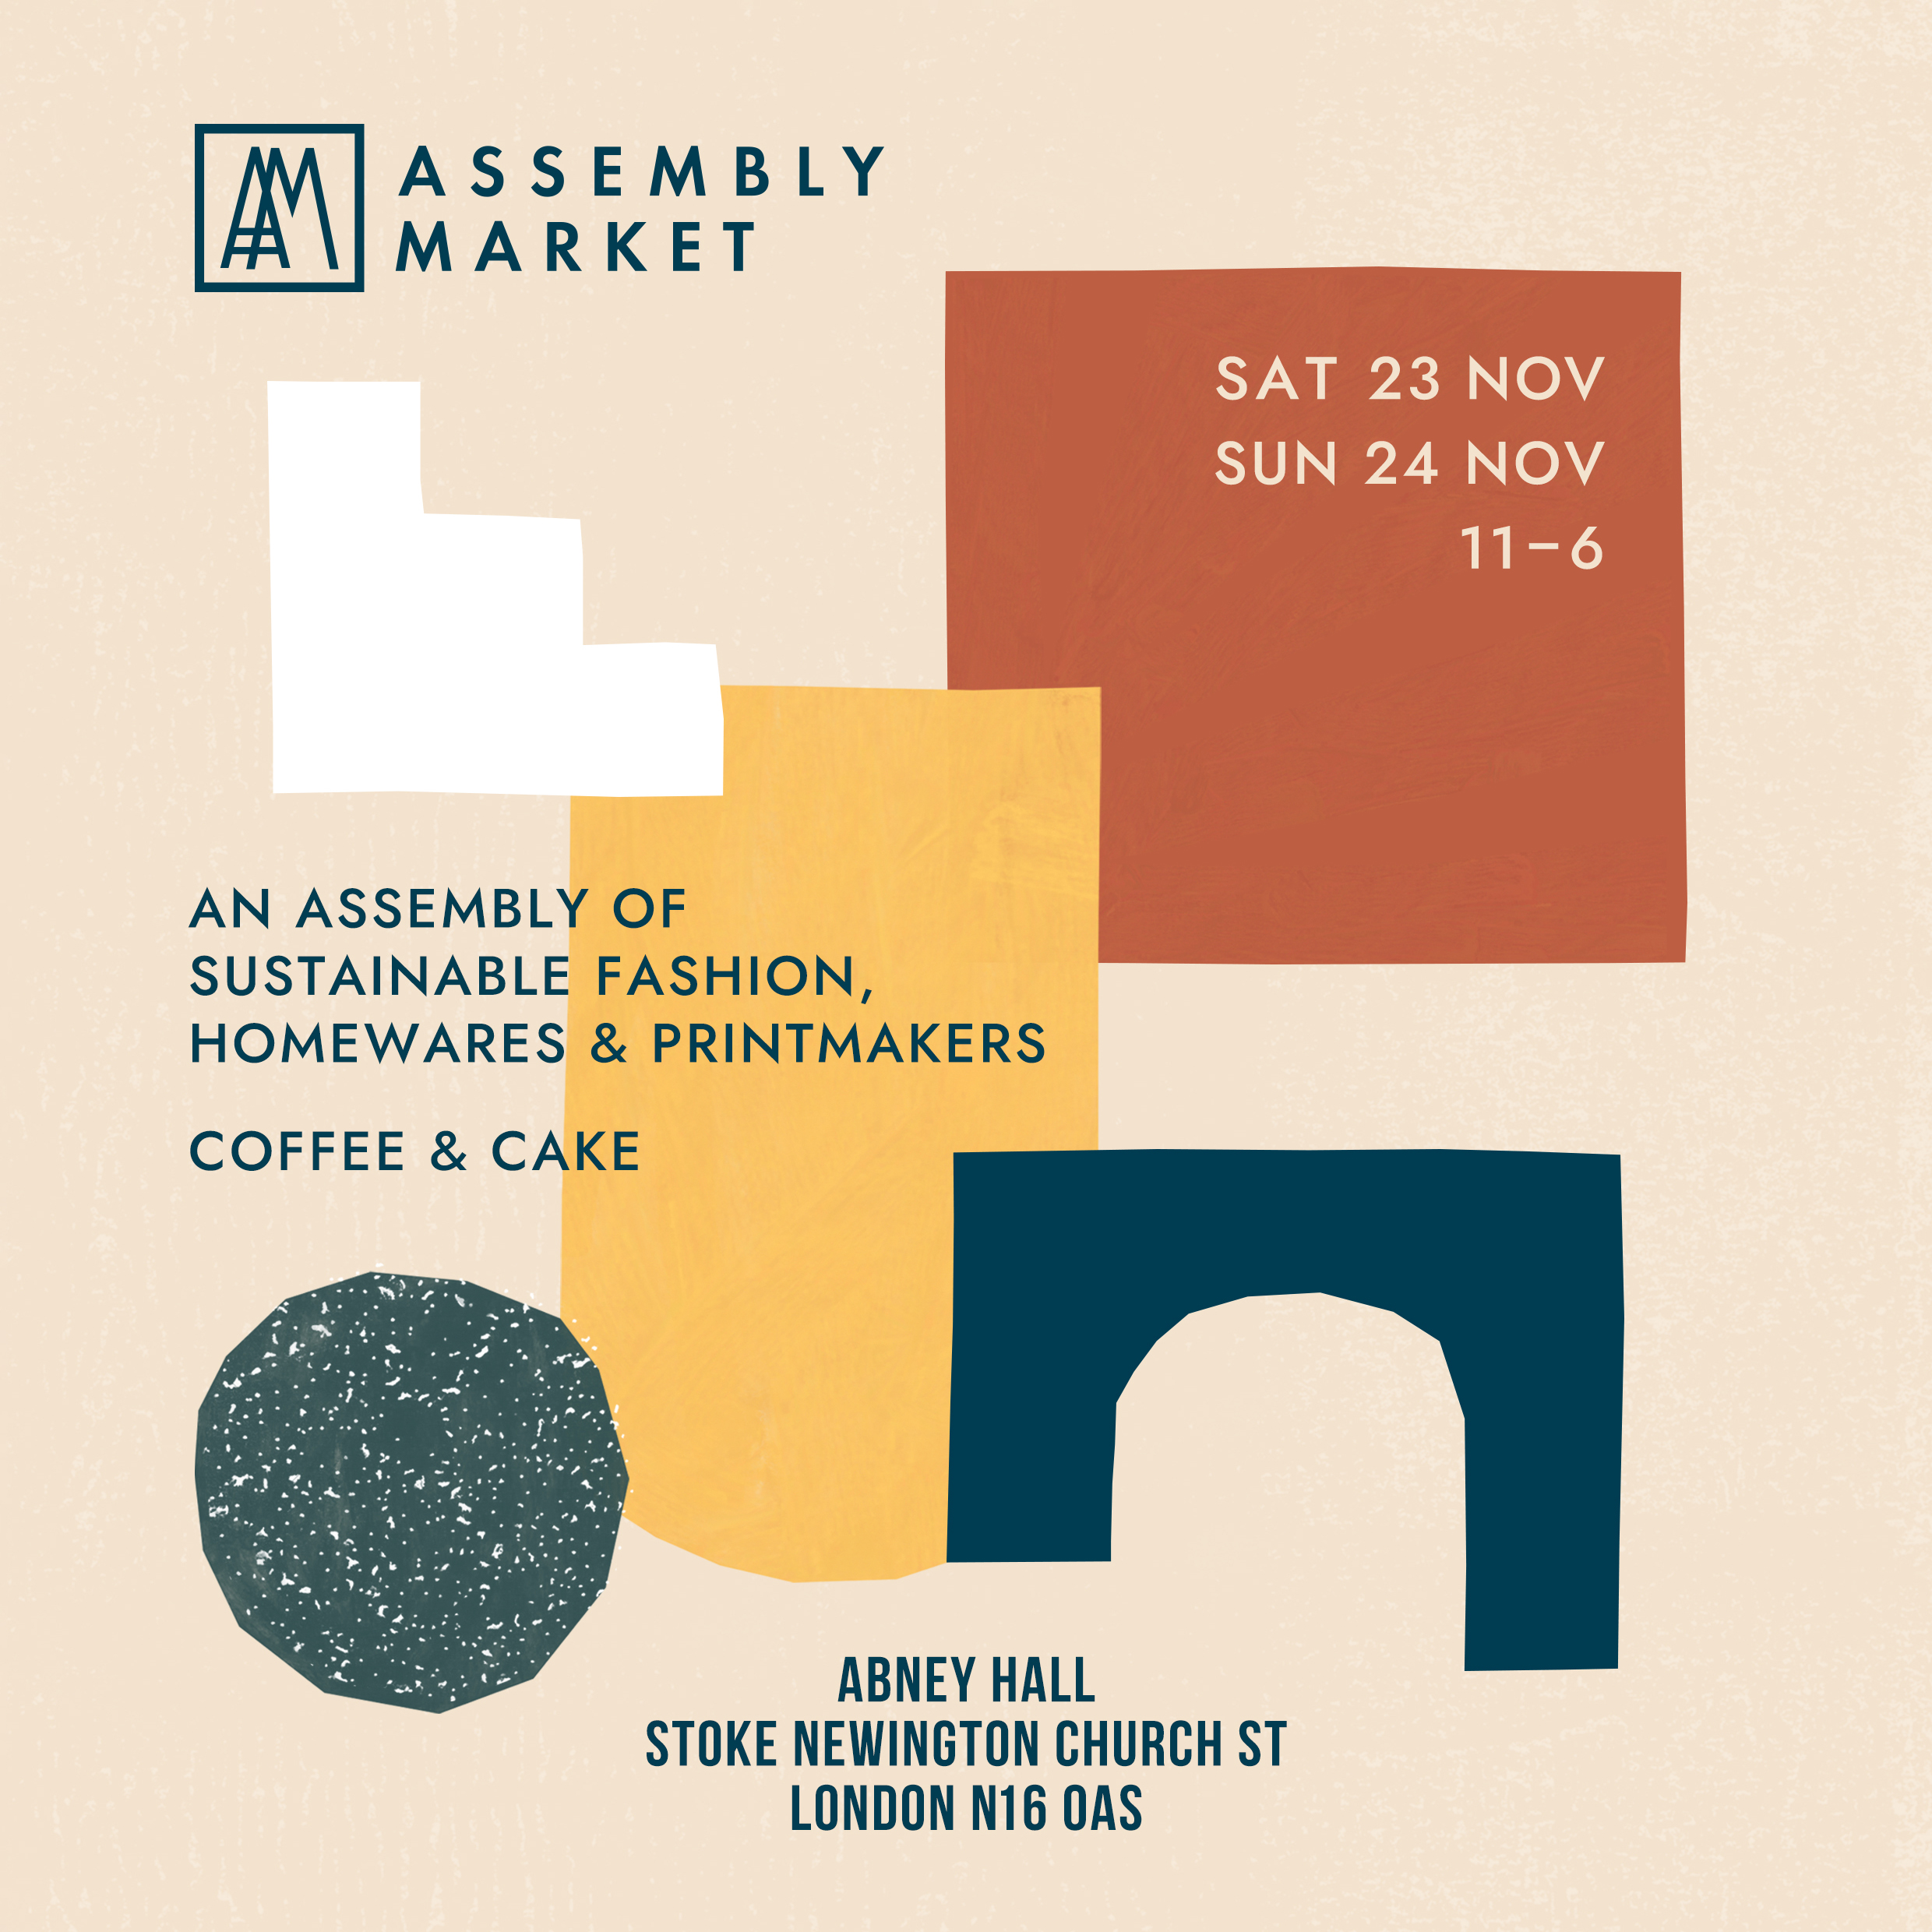 THE ASSEMBLY MARKET Stoke Newington